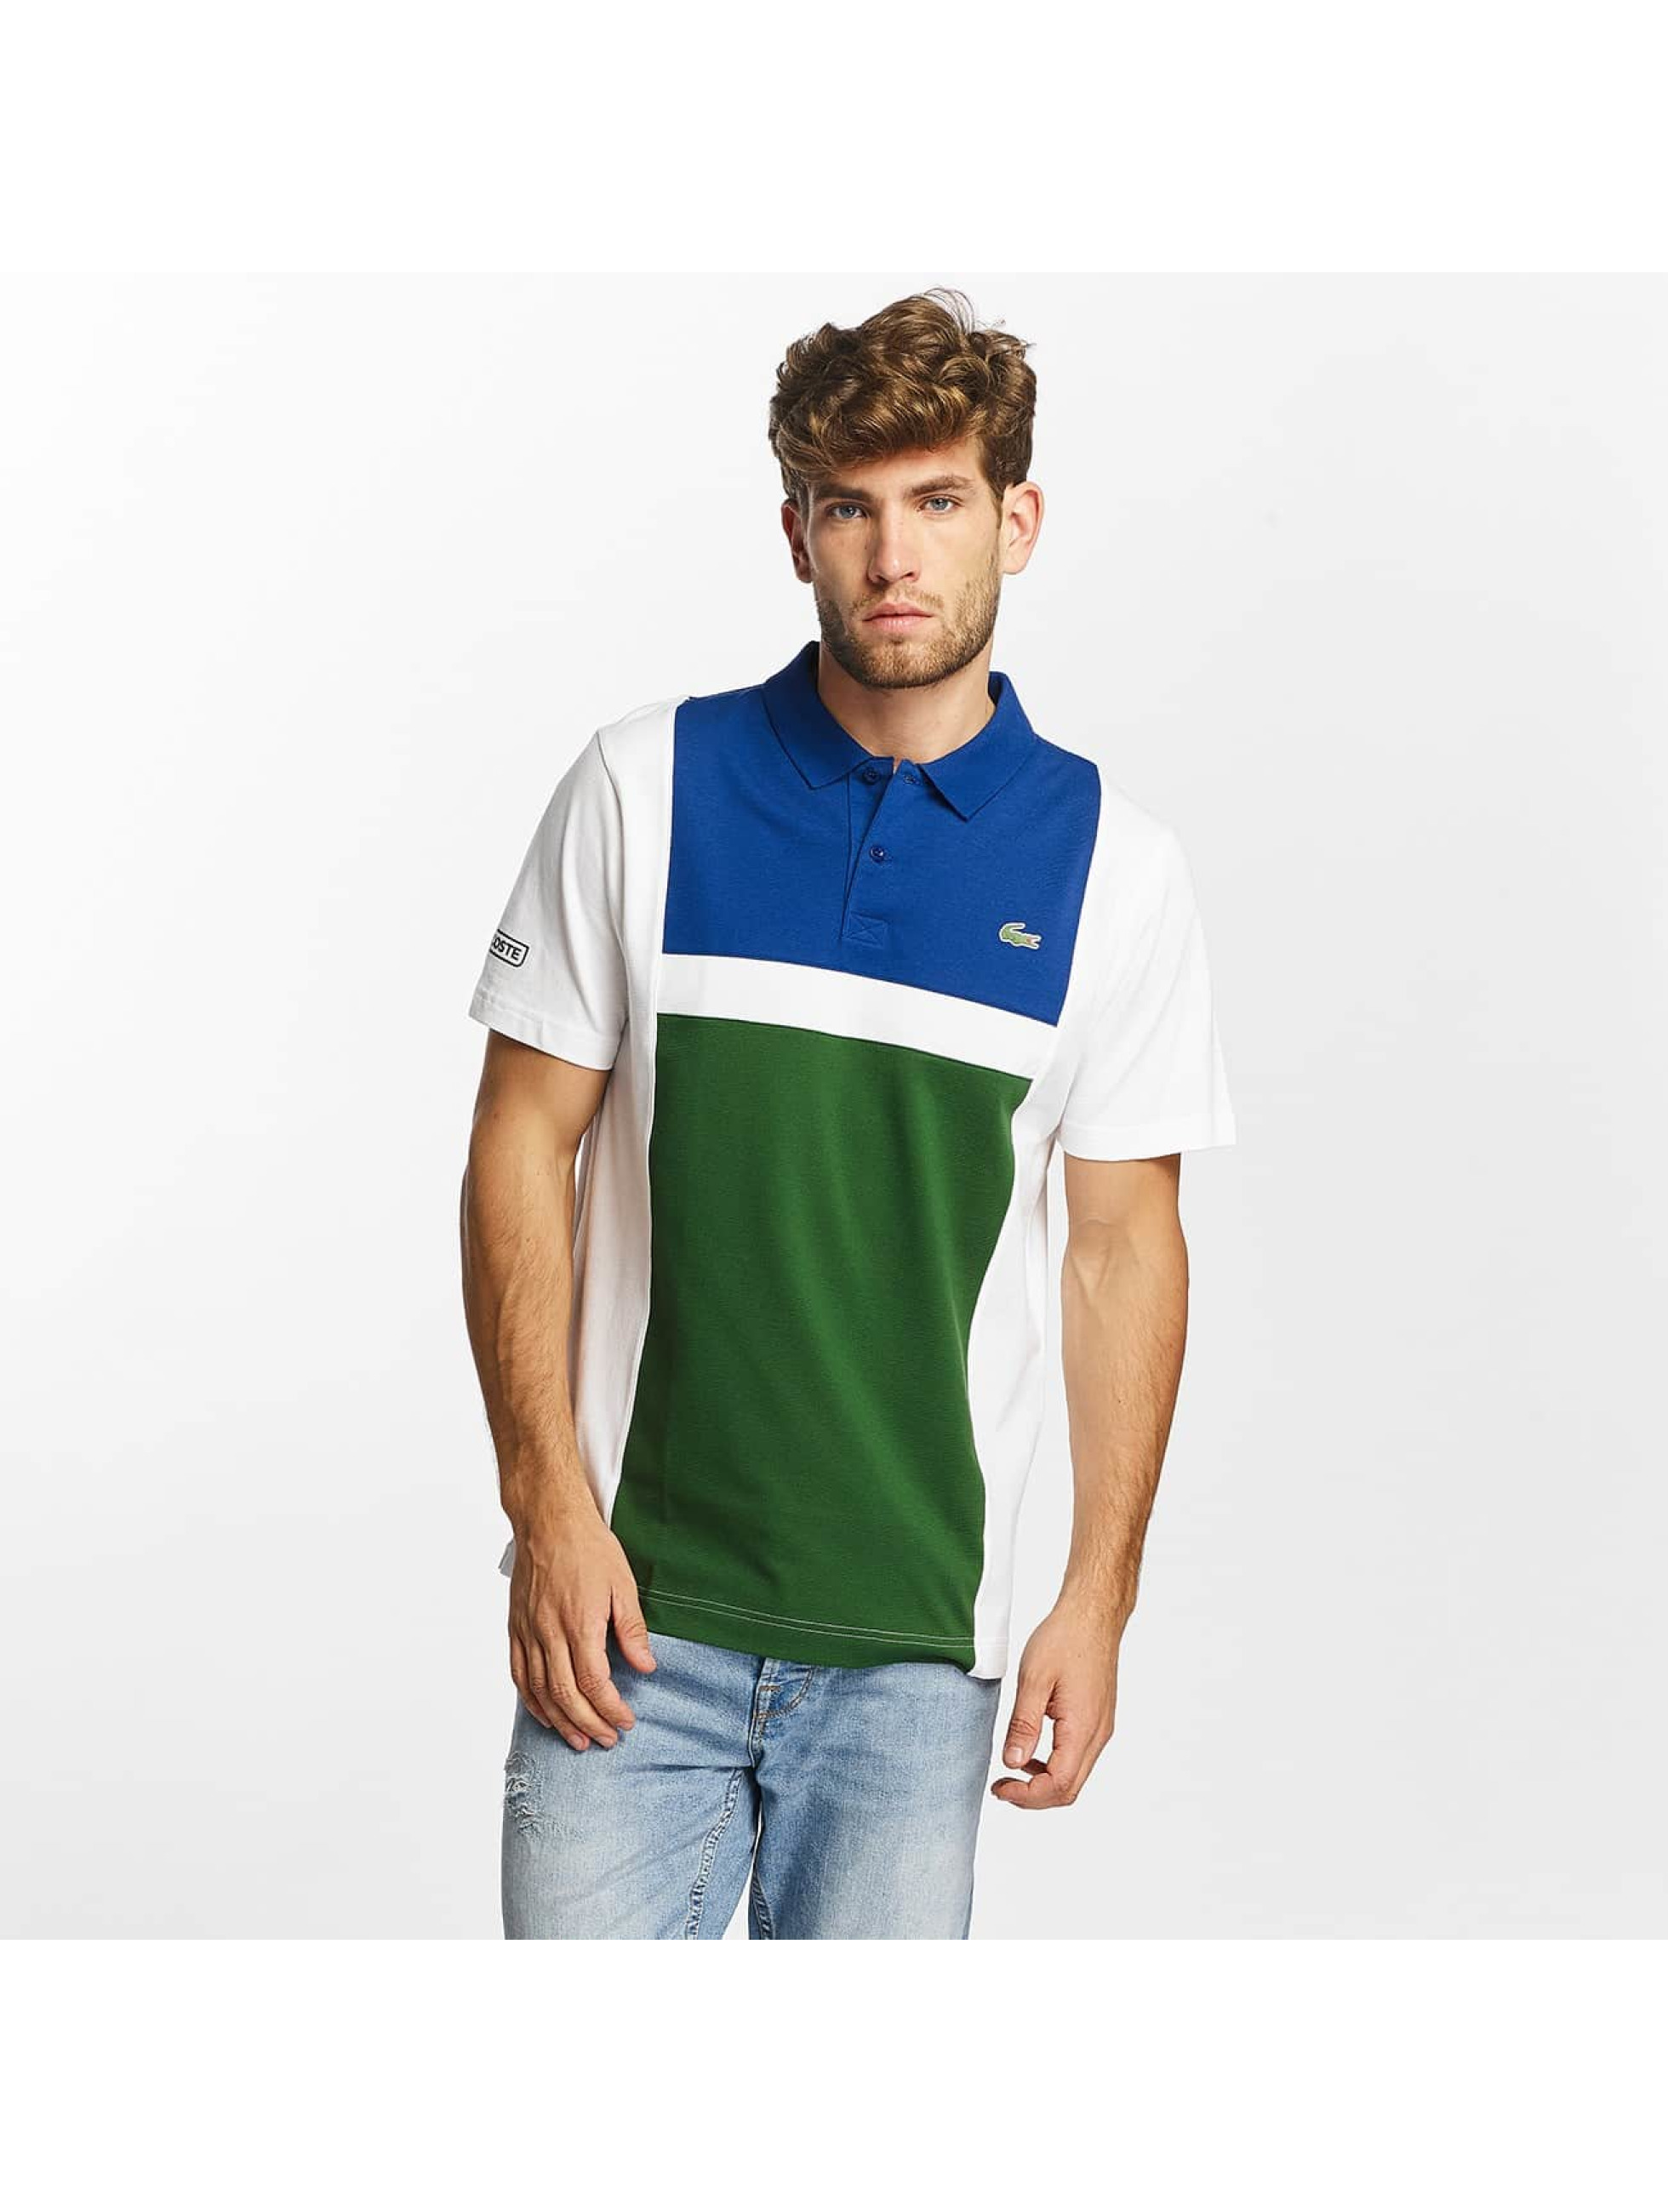 Lacoste Classic Poloshirt Short Sleeved Ribbed Collar colored